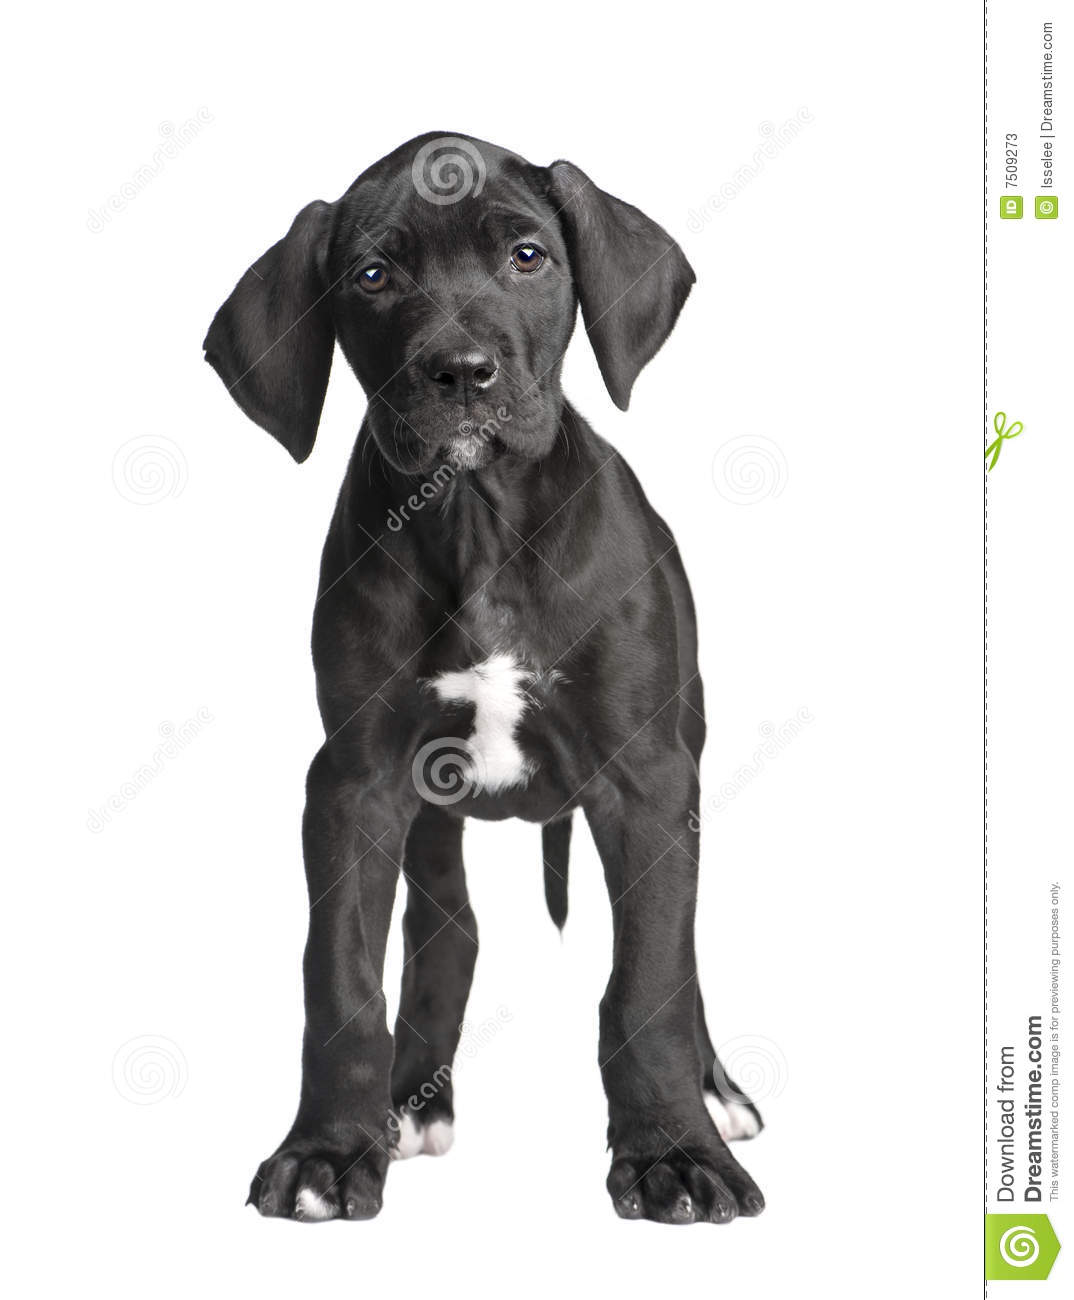 527 Great Dane Puppy White Background Photos Free Royalty Free Stock Photos From Dreamstime